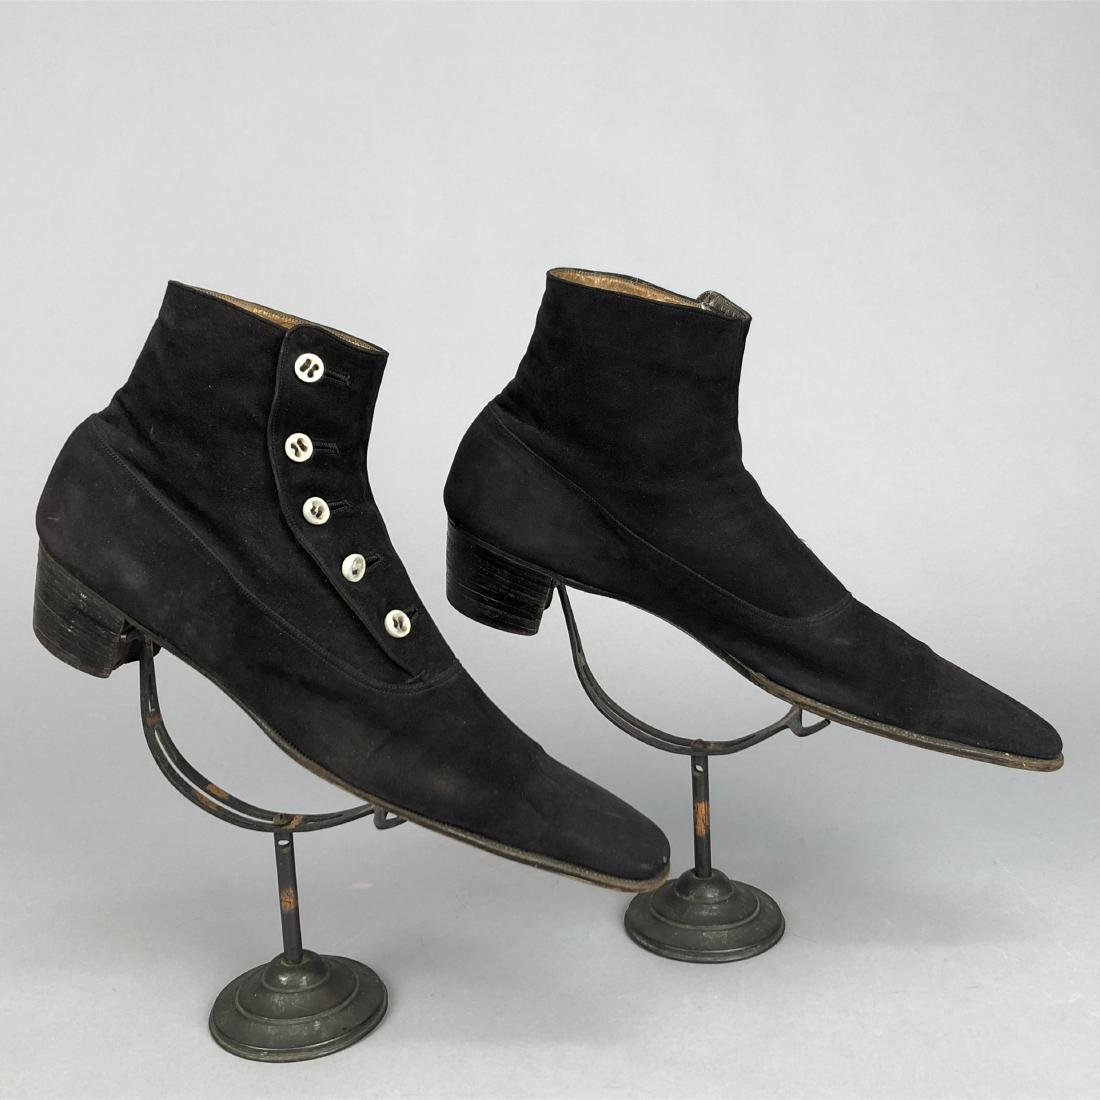 GENT'S SUEDE HIGH BUTTON SHOES, EARLY 20th C. - 3